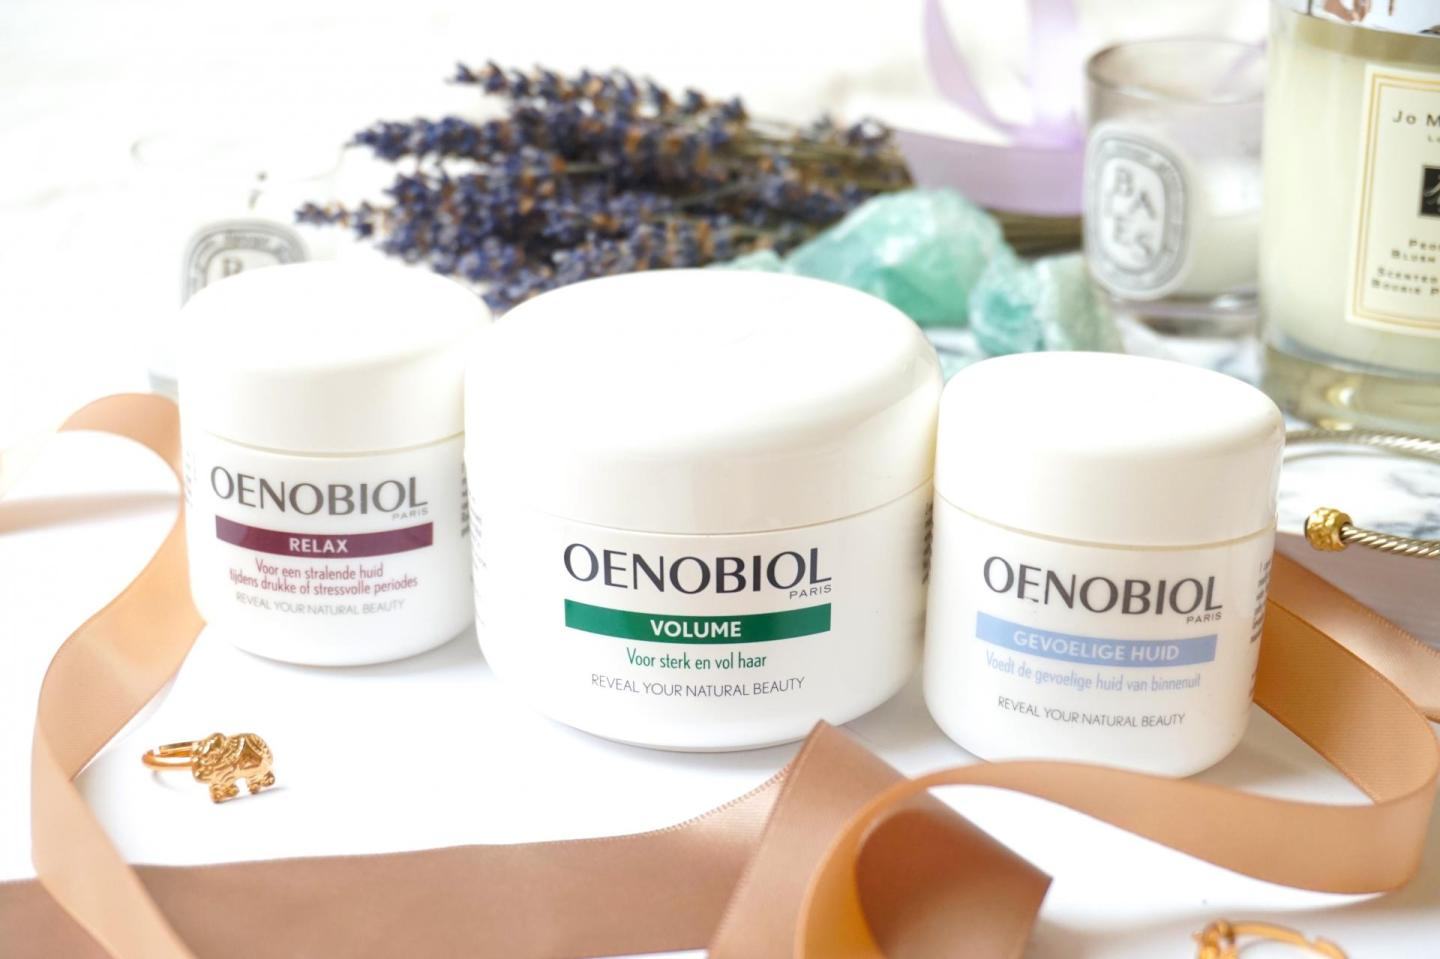 Oenobiol, Reveal your natural beauty